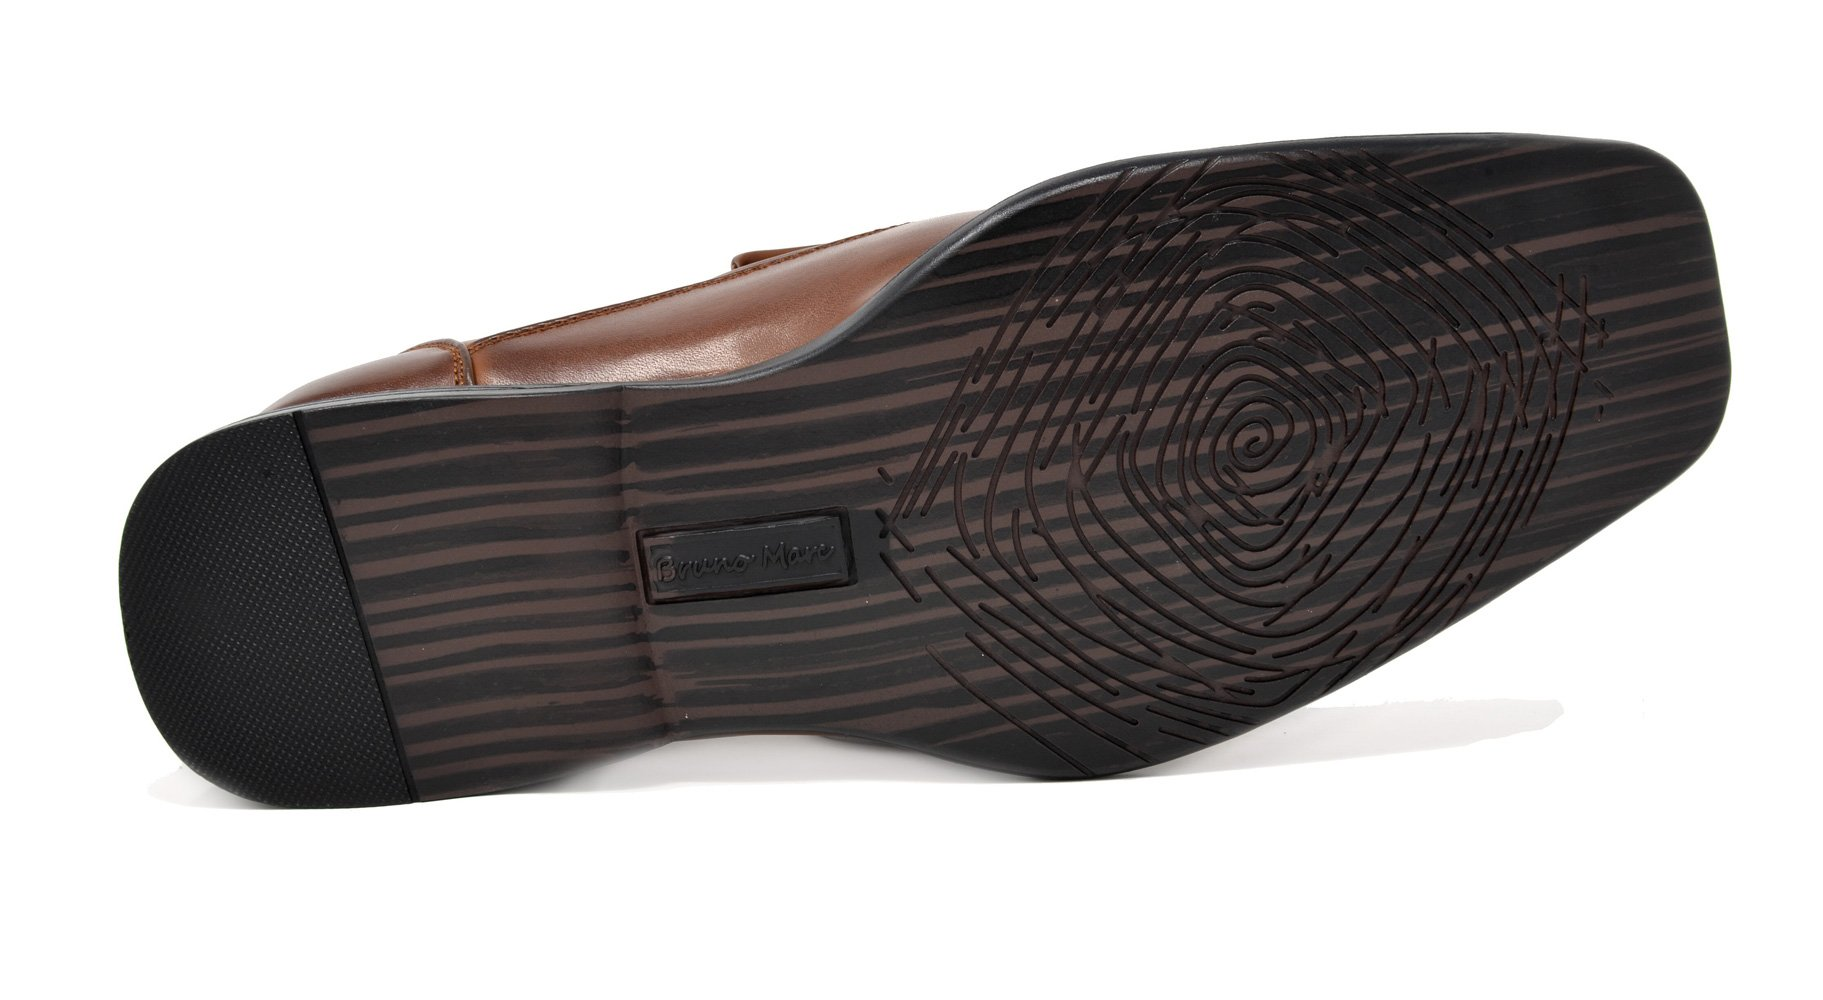 Bruno Marc Men's Giorgio-1 Brown Leather Lined Dress Loafers Shoes - 11 M US by BRUNO MARC NEW YORK (Image #7)